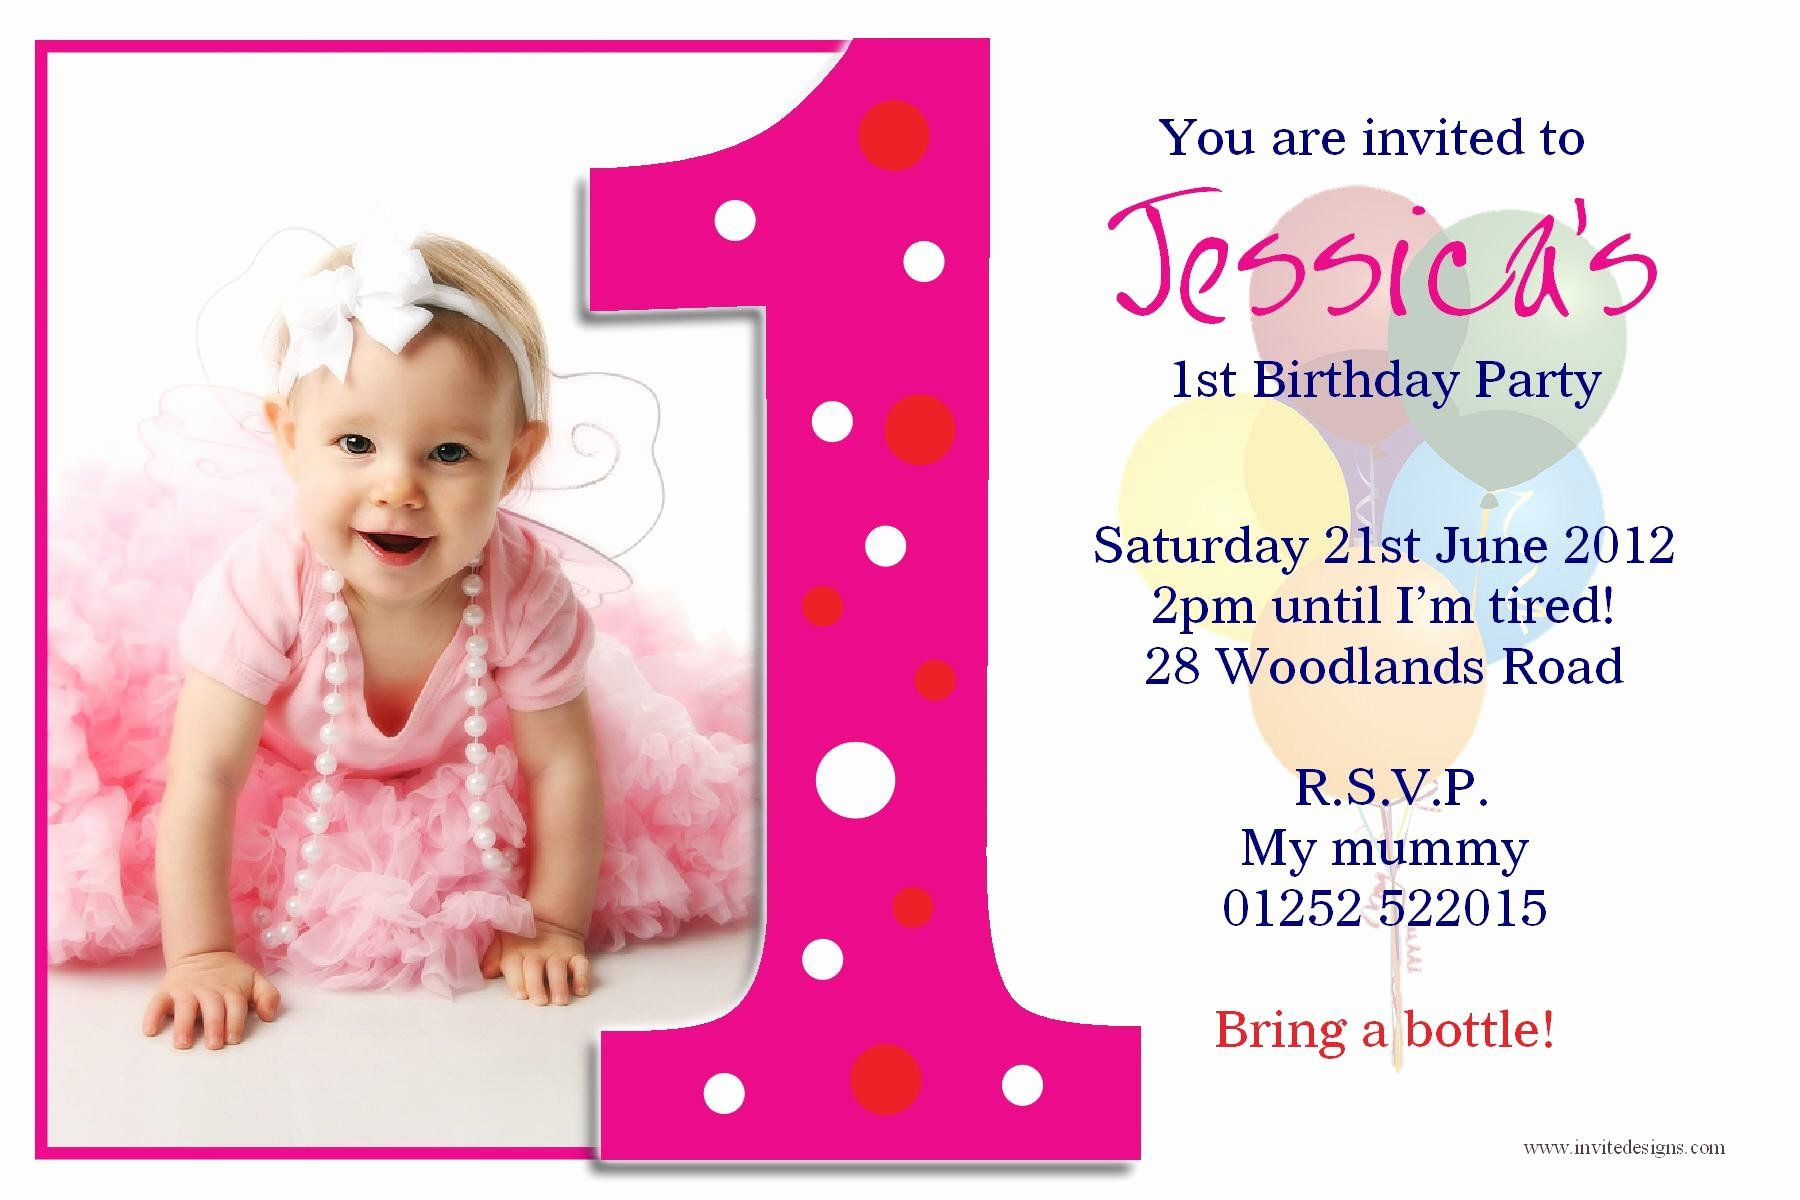 Birthday Invitation Card Template Unique Birthday Invitation Card